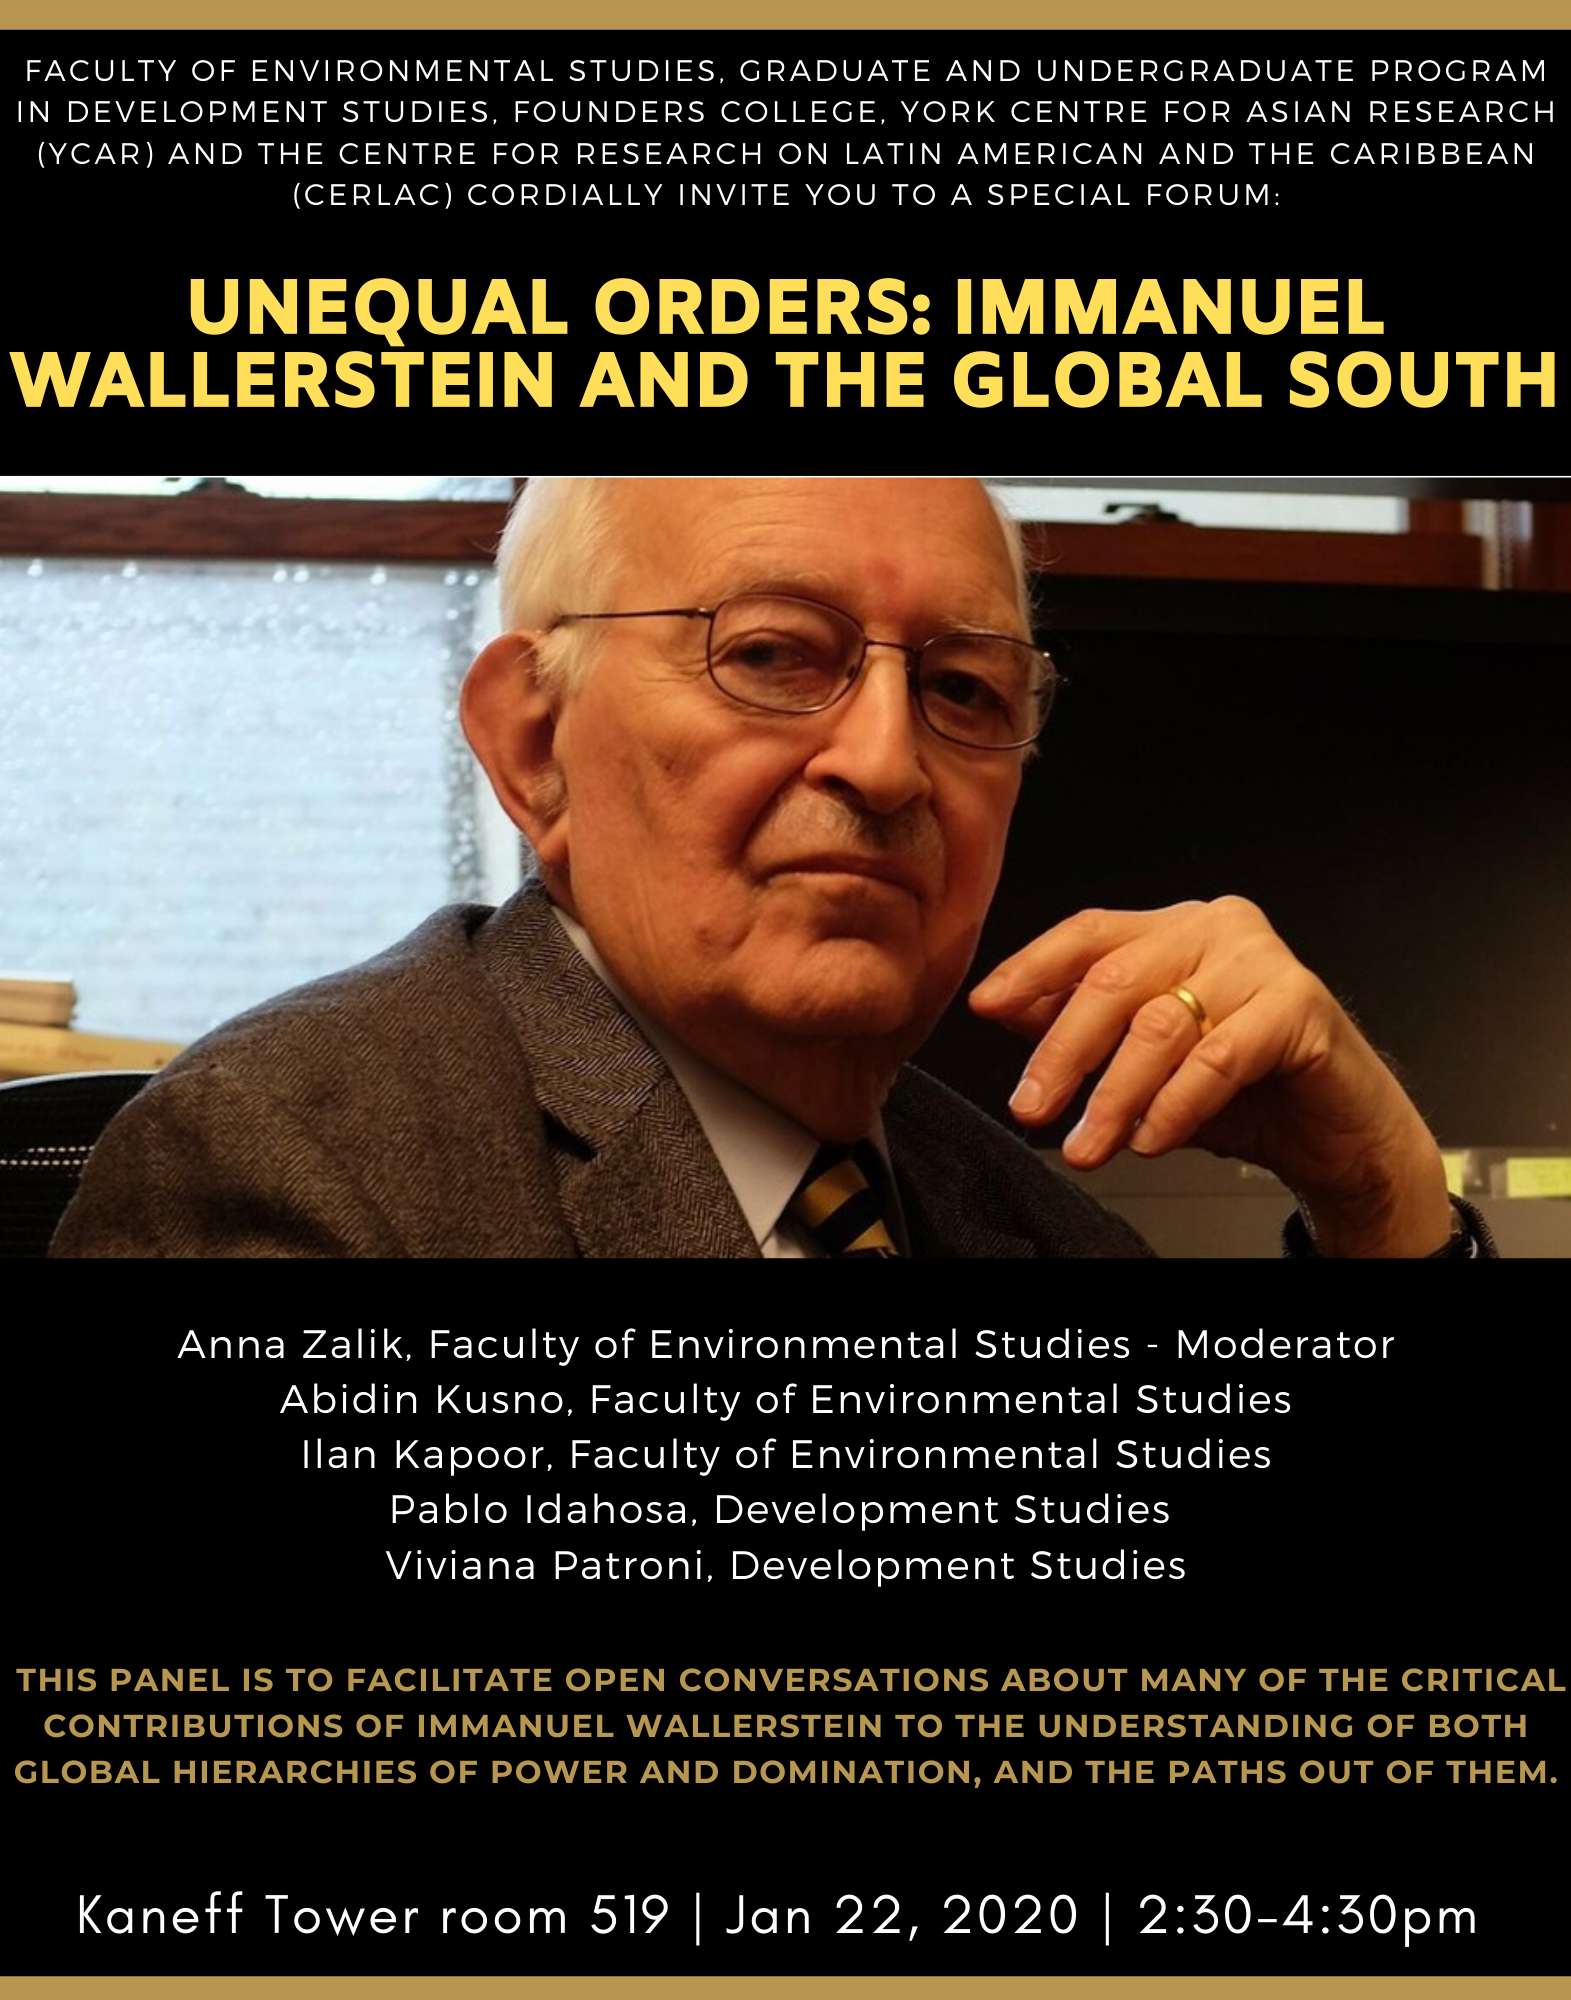 Unequal Orders: Immanuel Wallerstein and the Global South @ Kaneff Tower 519